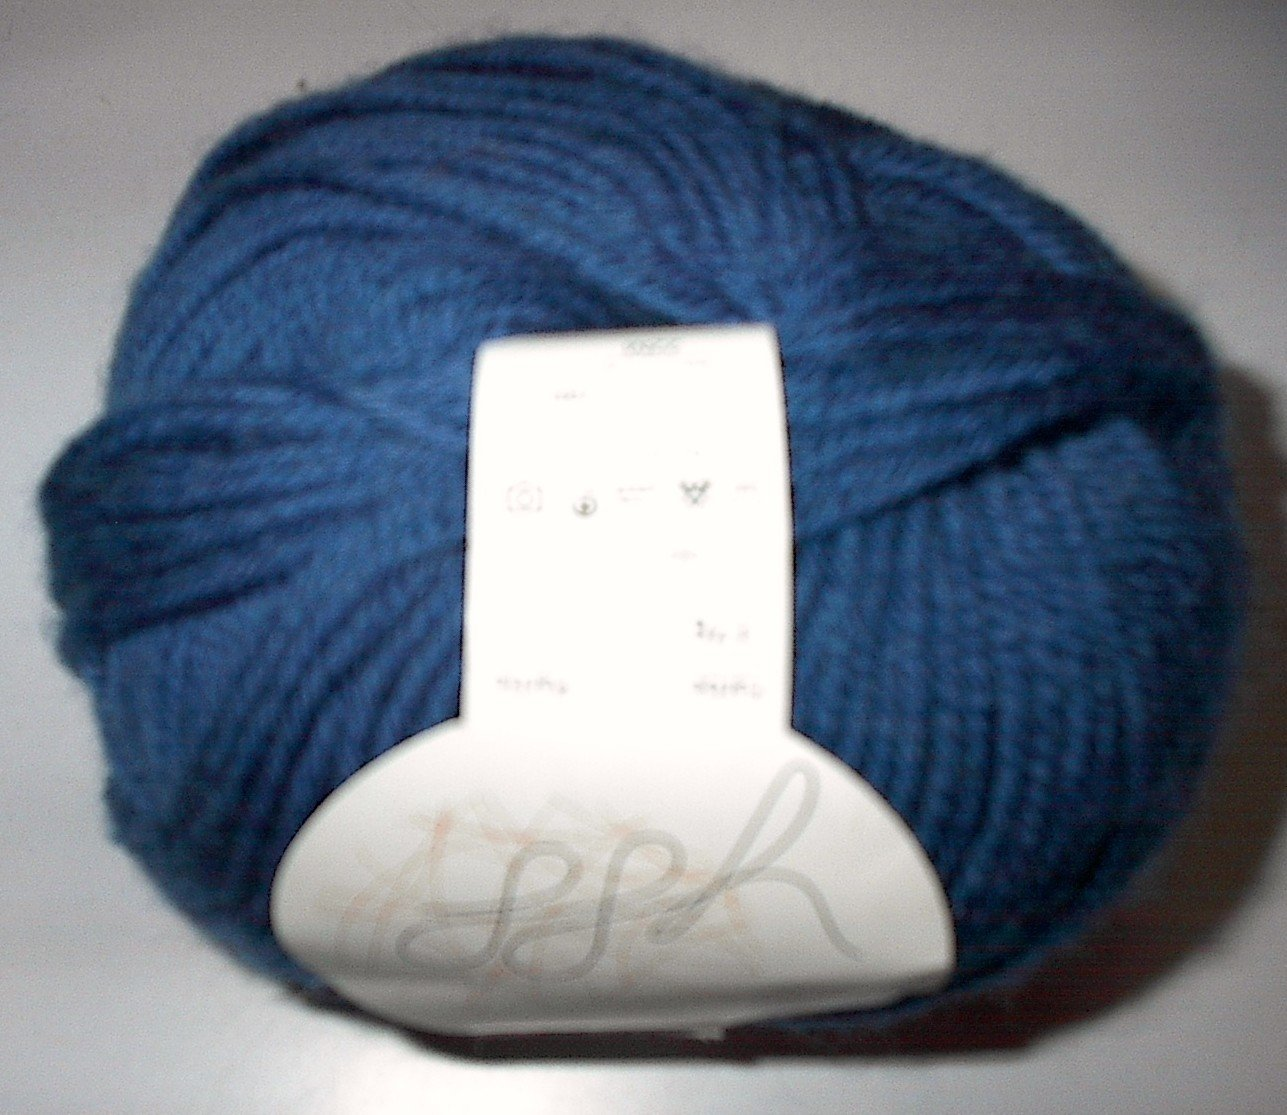 GGH Muench Wollywasch Superwash Wool Yarn 176 Blue Loom Knit Crochet